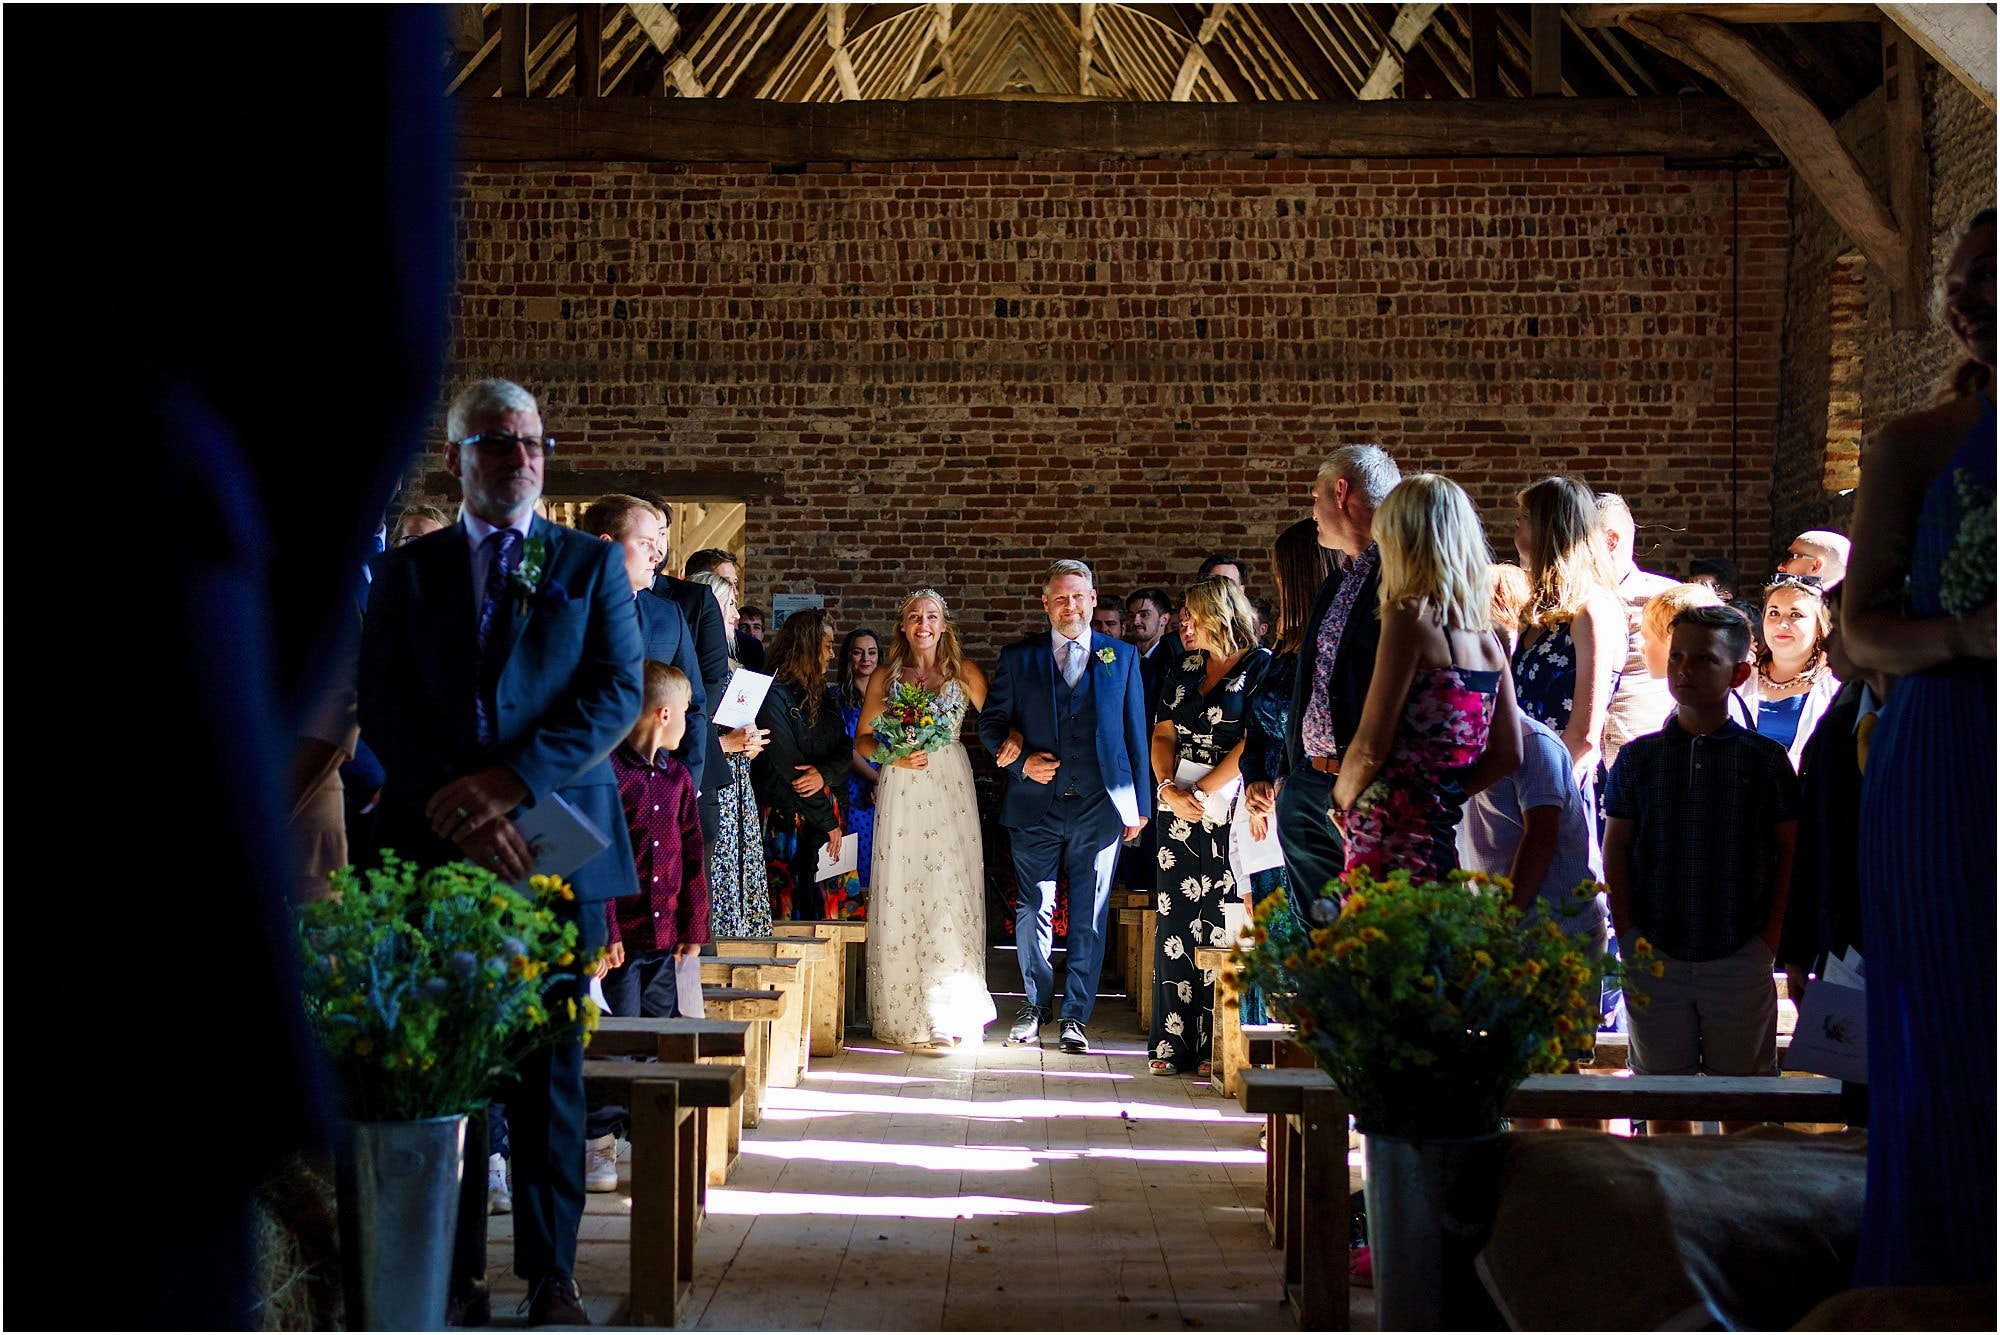 Father of bride and bride walking down the aisle